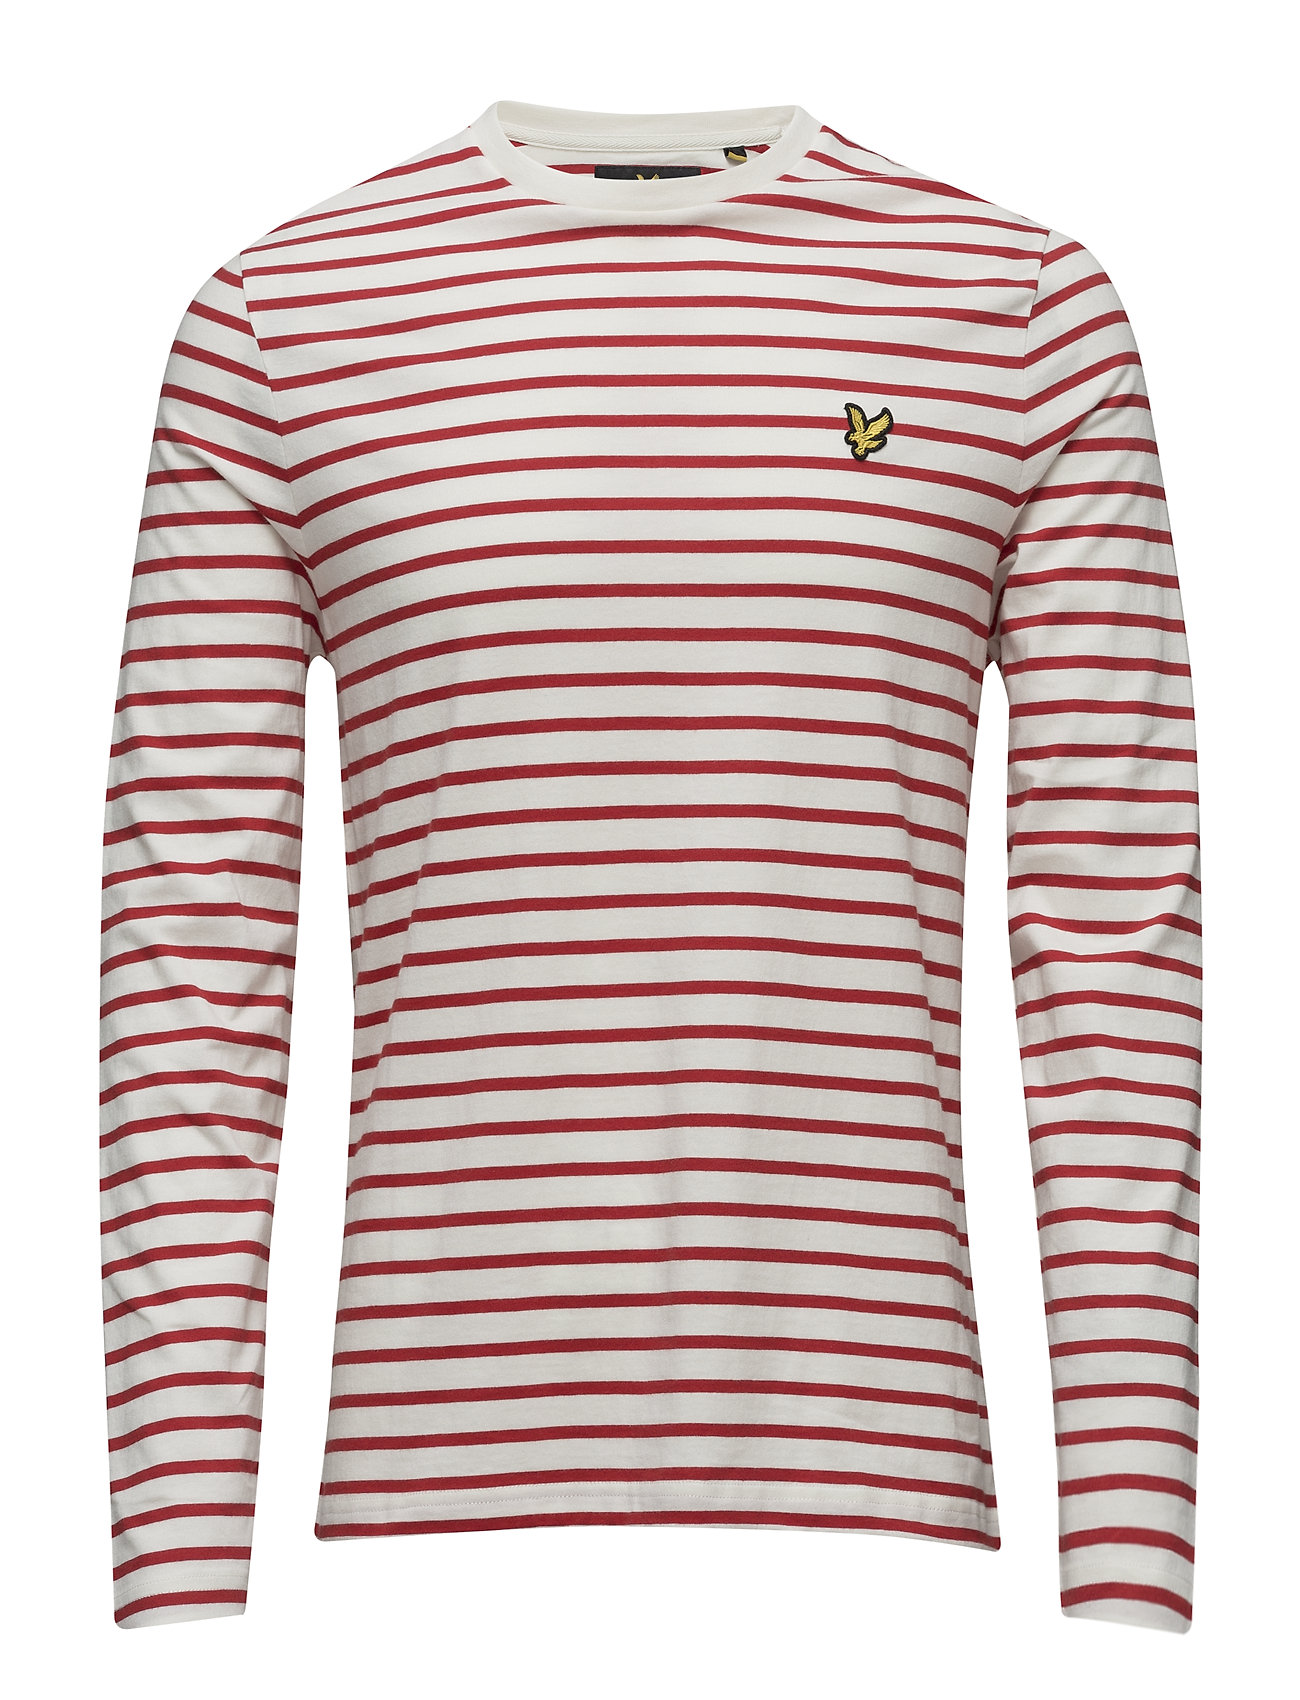 Ls Crew Neck Bretton Stripe Tshirt Lyle & Scott Langærmede til Herrer i Racing Red